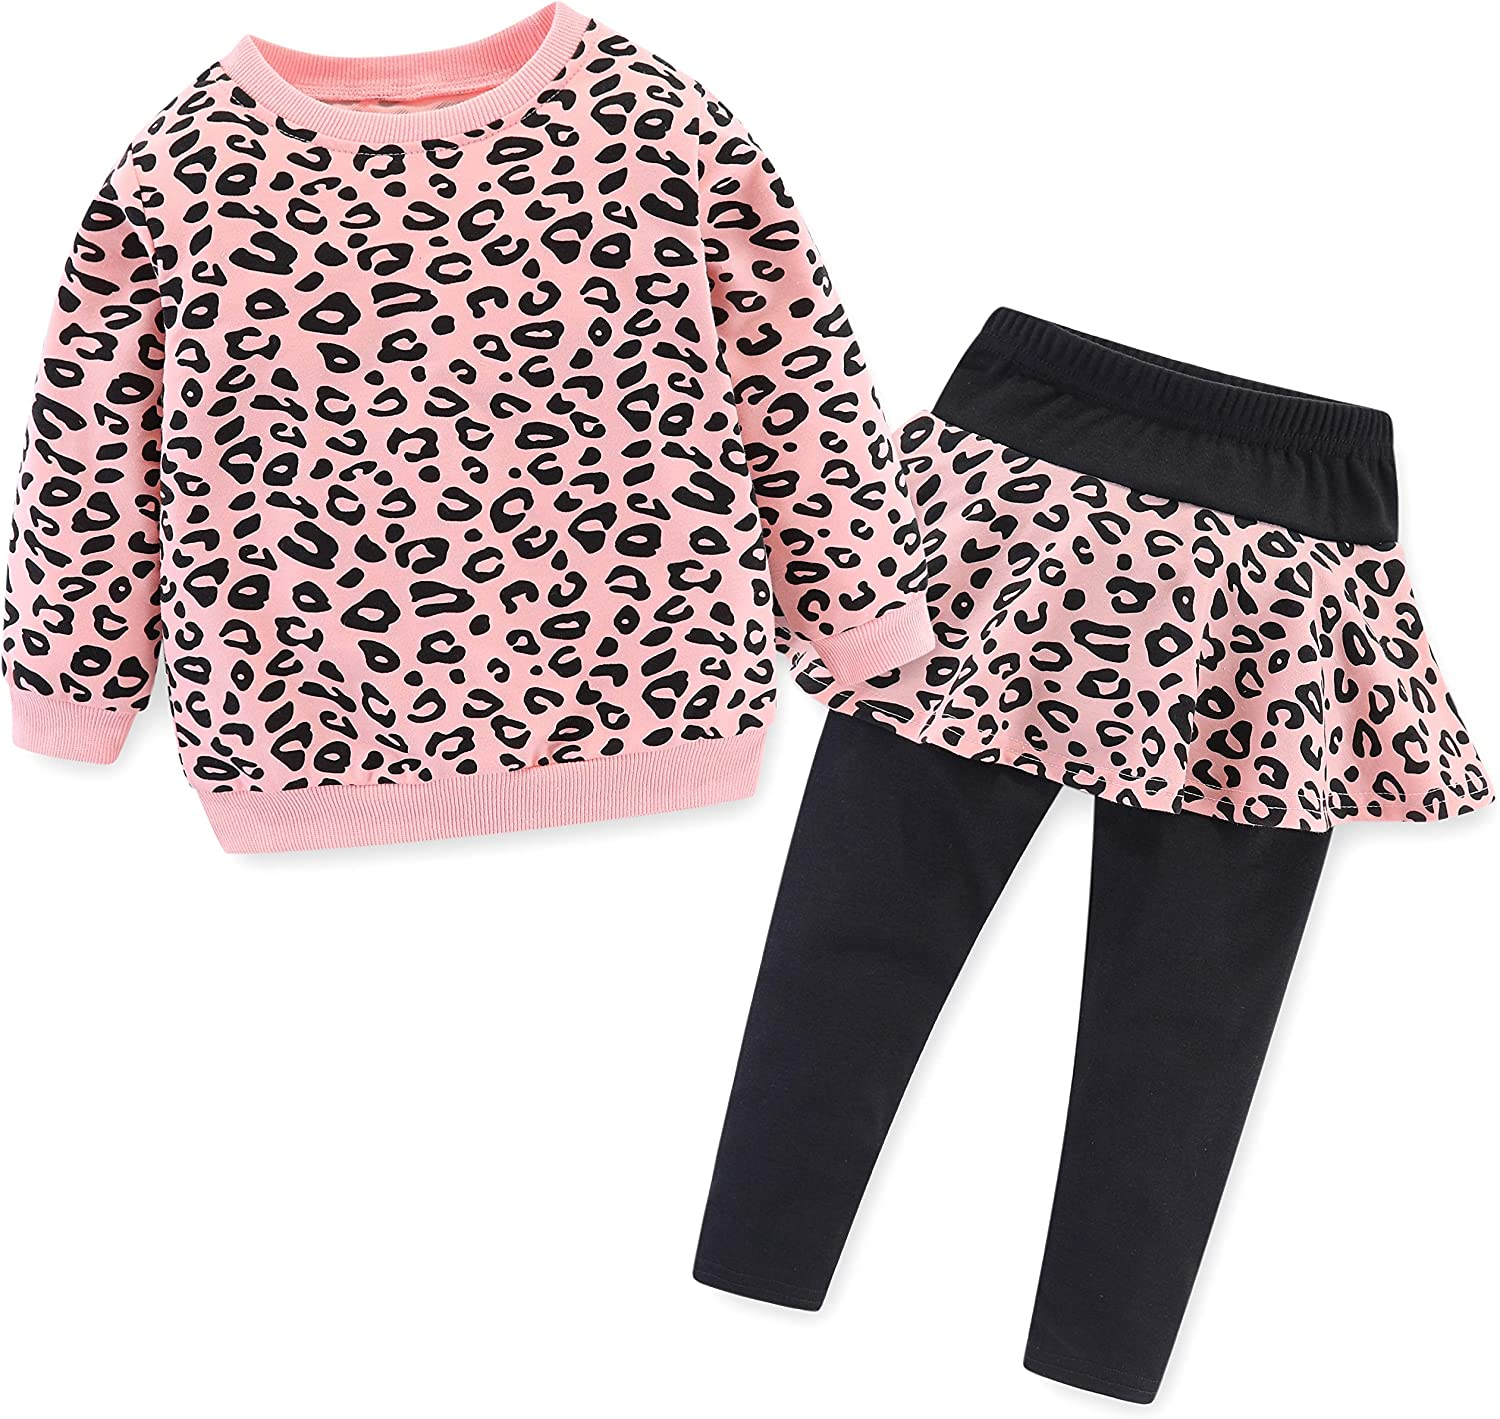 BomDeals Adorable Cute Toddler Baby Girls Clothes Set,Long Sleeve T-Shirt +Pants Outfit